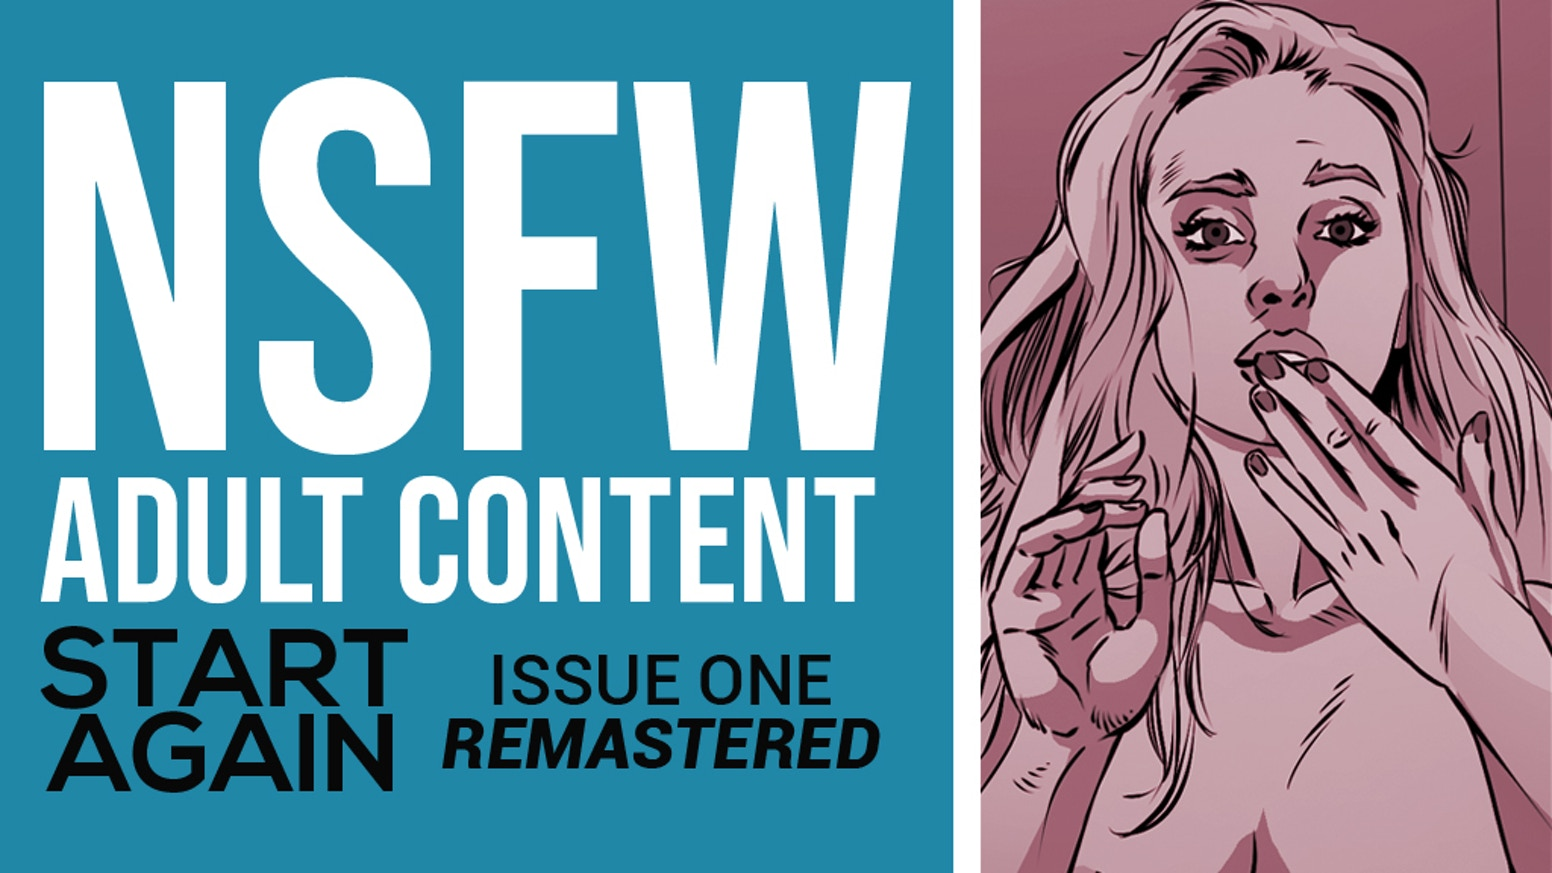 The remastered edition of the sold out superhero boy meets girl story, START AGAIN #1. NSFW.